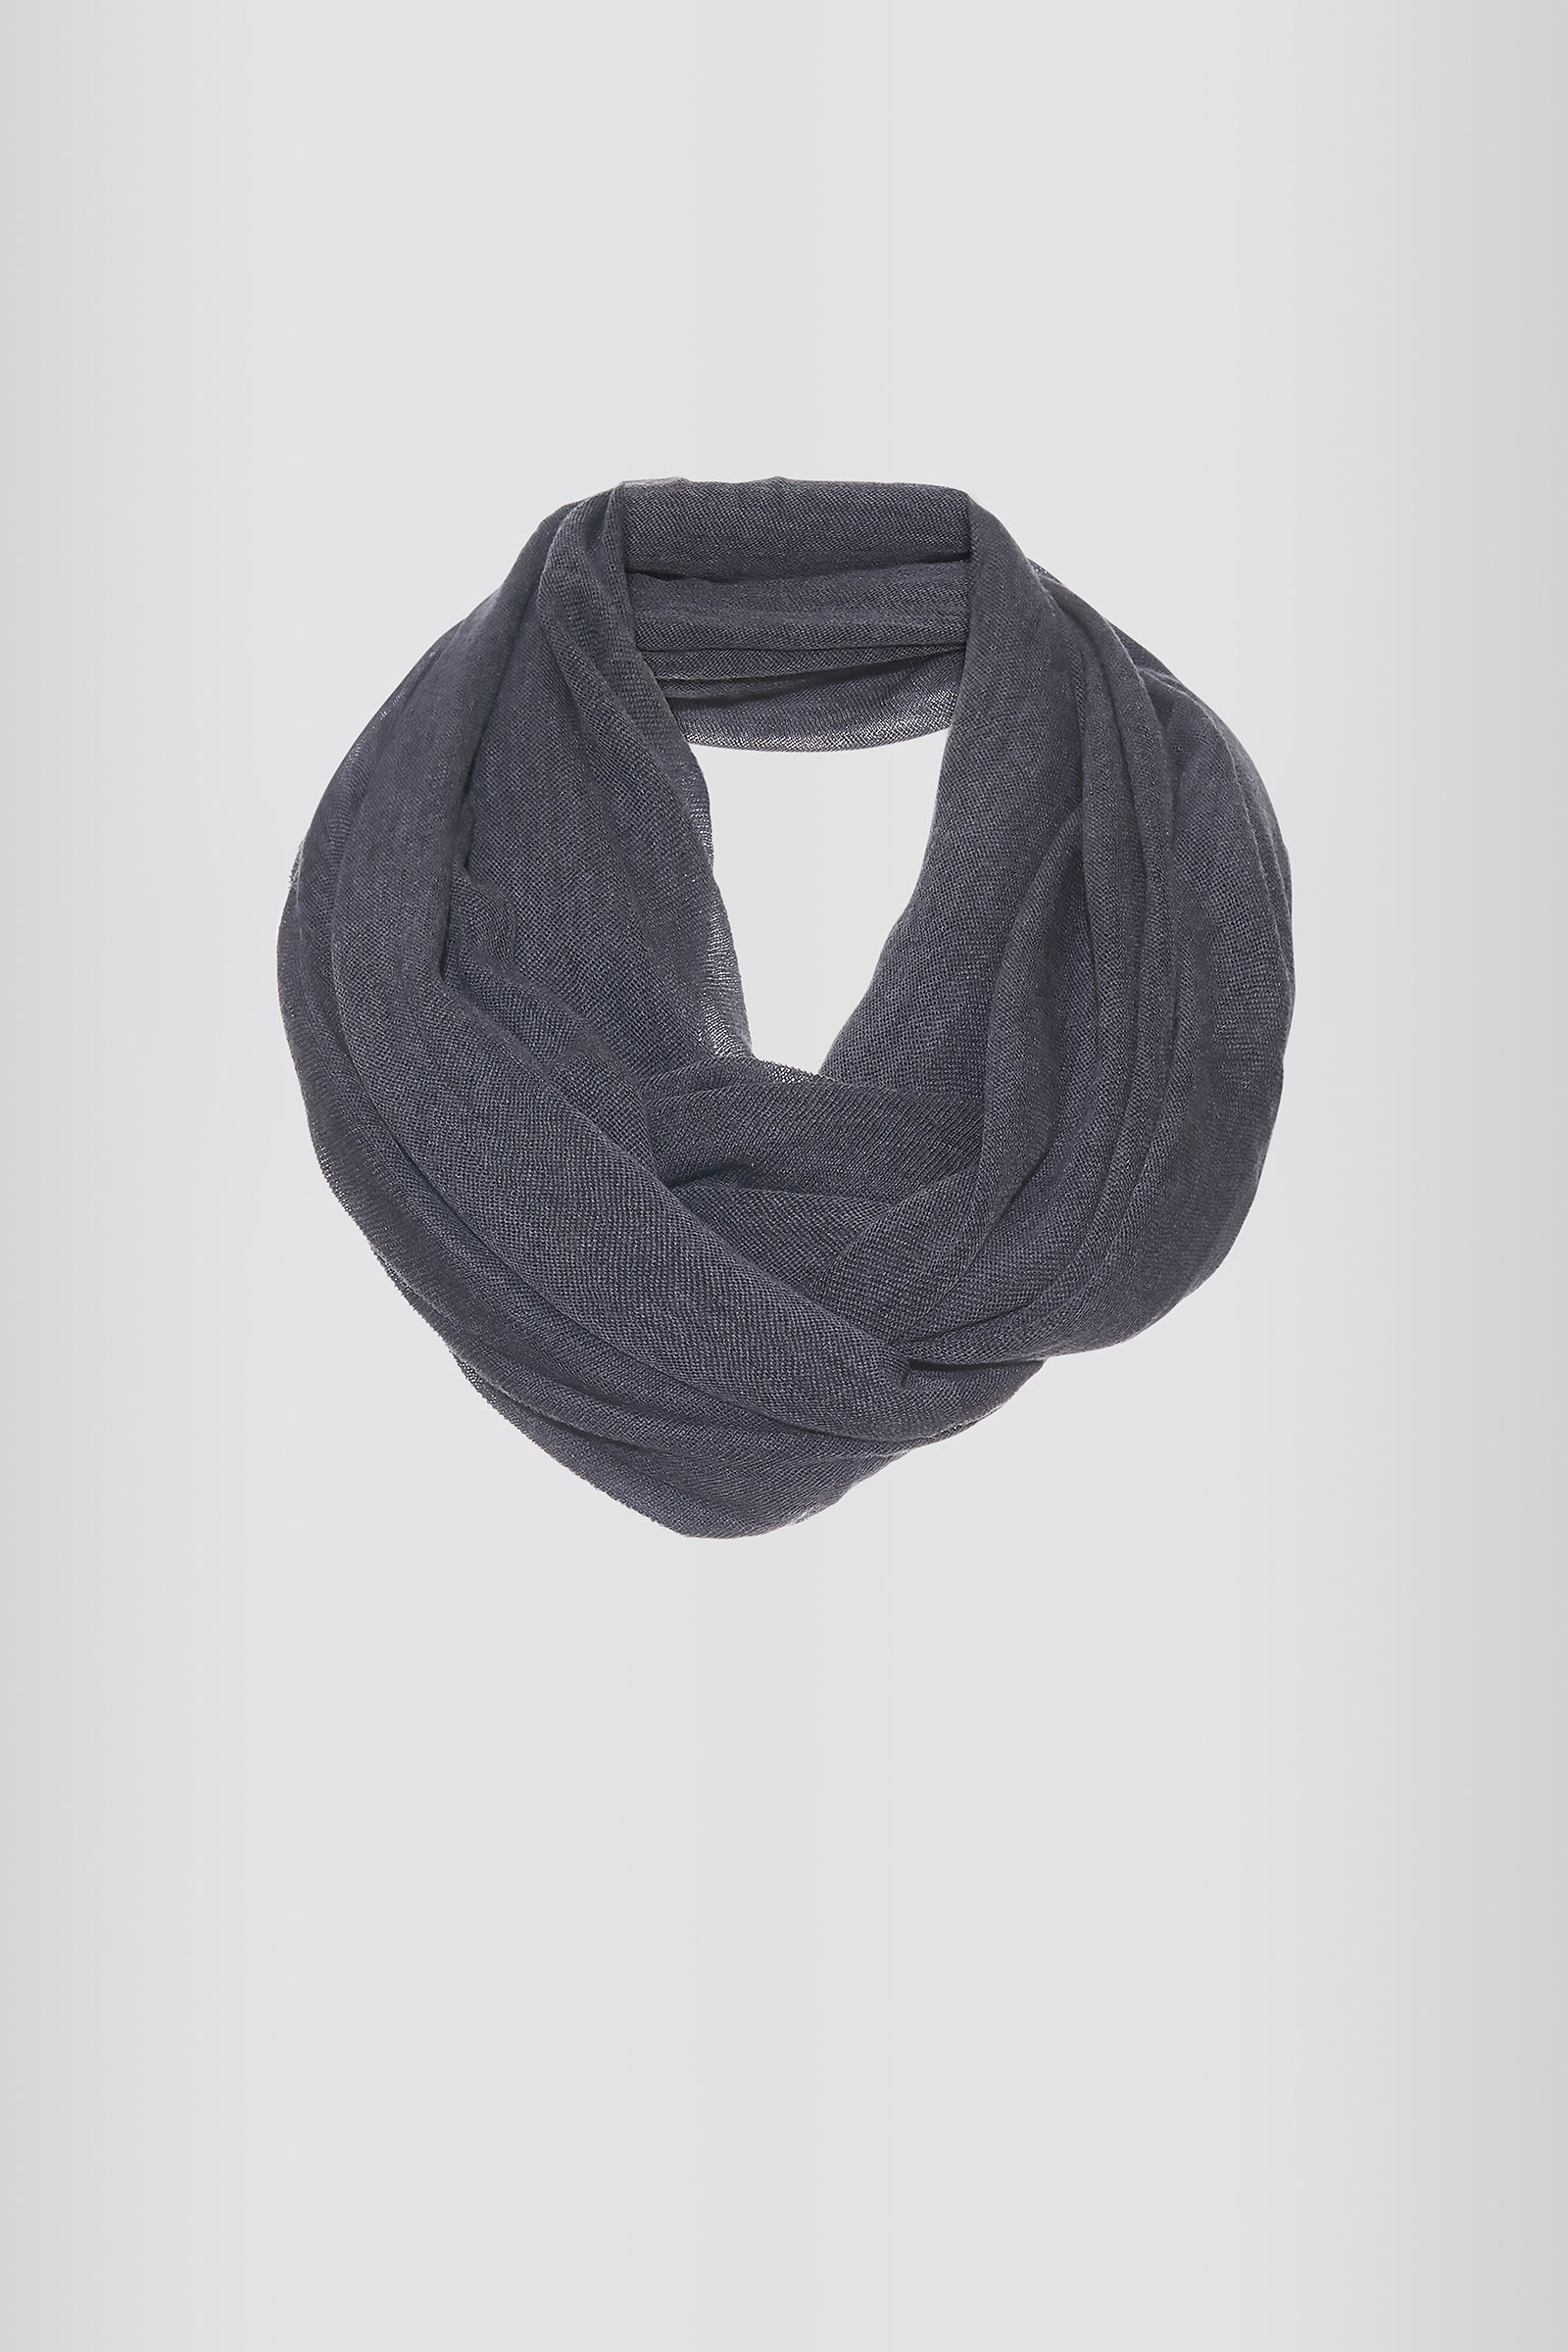 Kal Rieman Infinity Circle Scarf in Charcoal